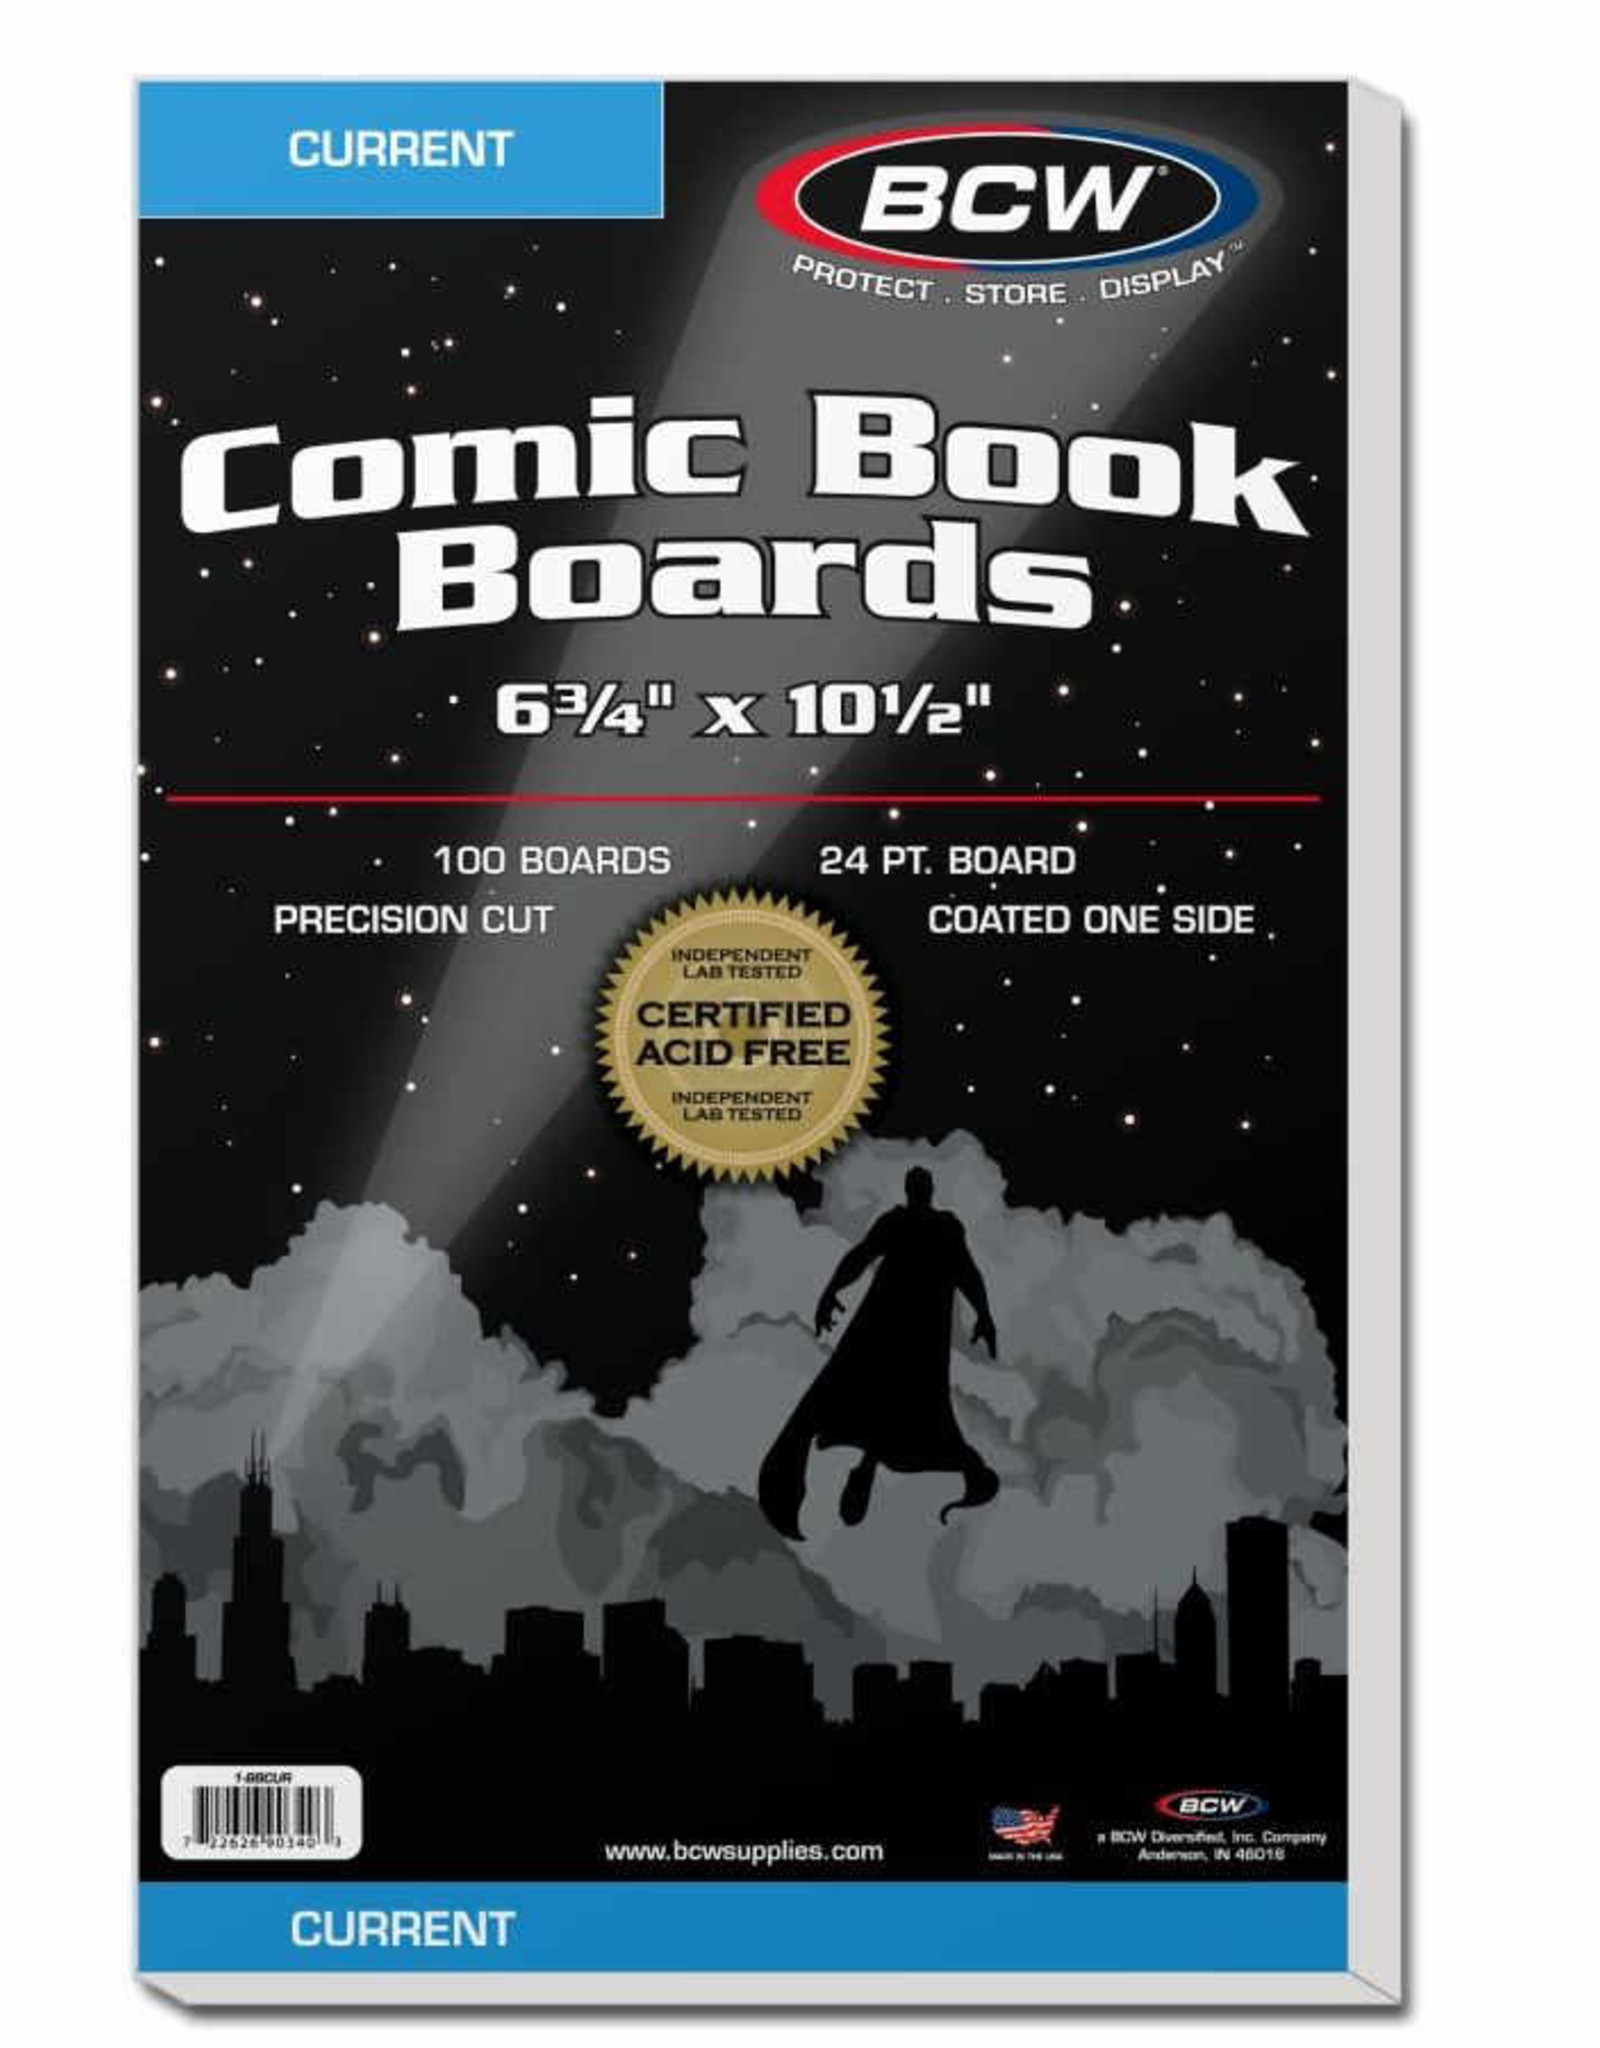 BCW BOARDS CURRENT SOLD IN BUNDLES OF 100